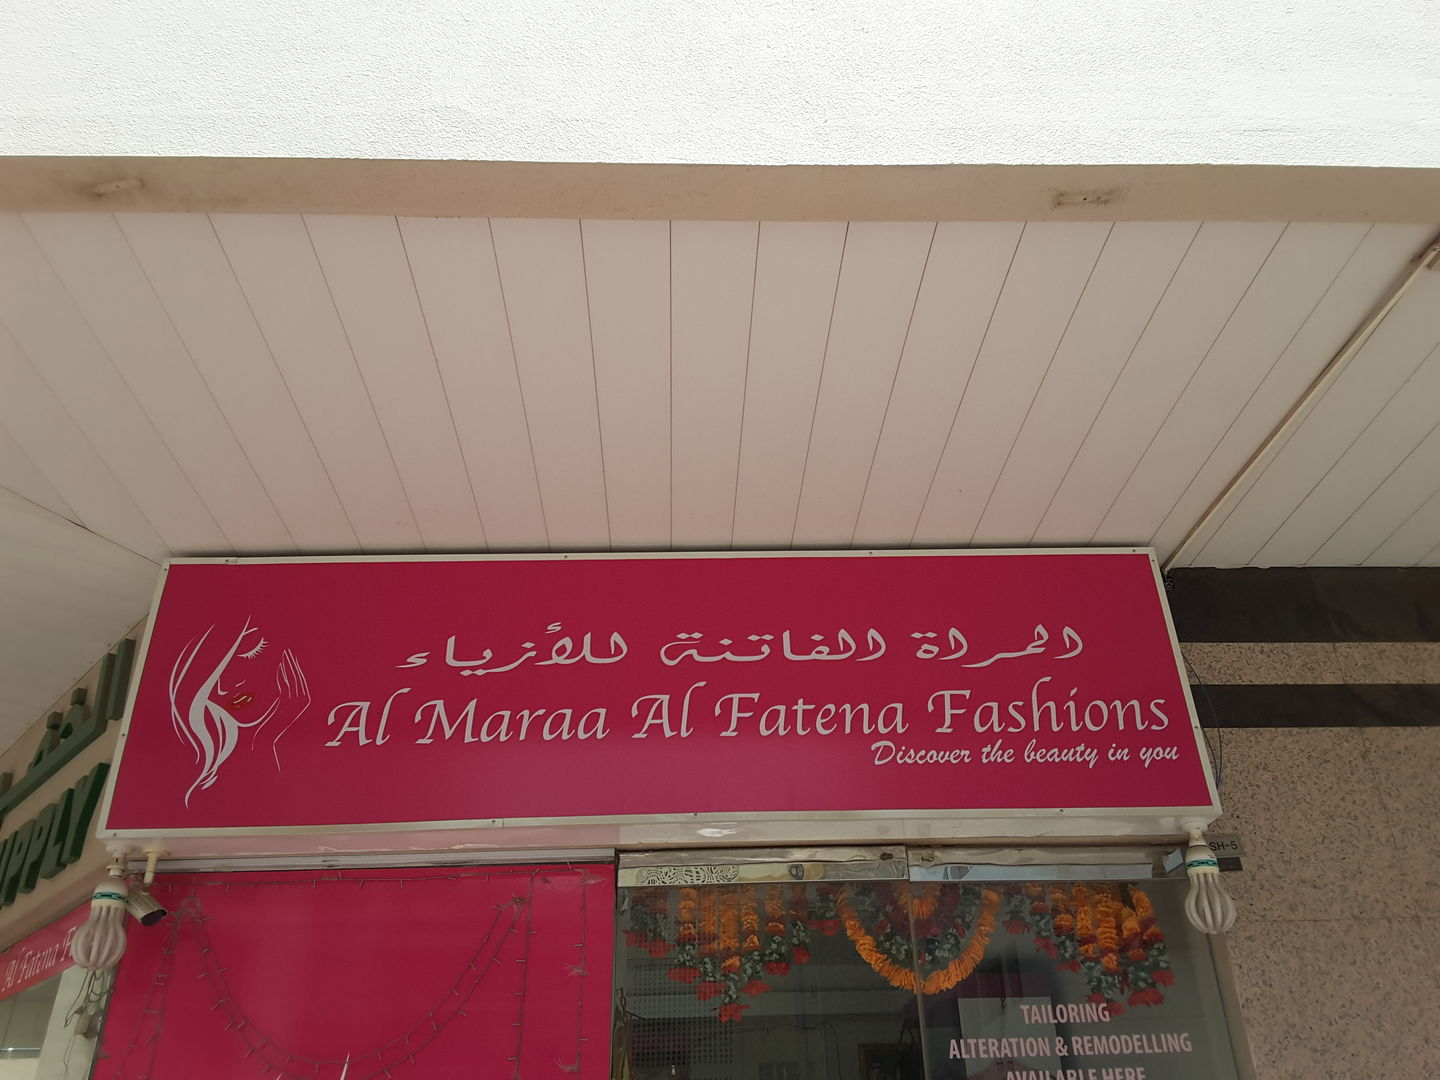 HiDubai-business-al-maraa-al-fatena-fashions-shopping-apparel-al-karama-dubai-2